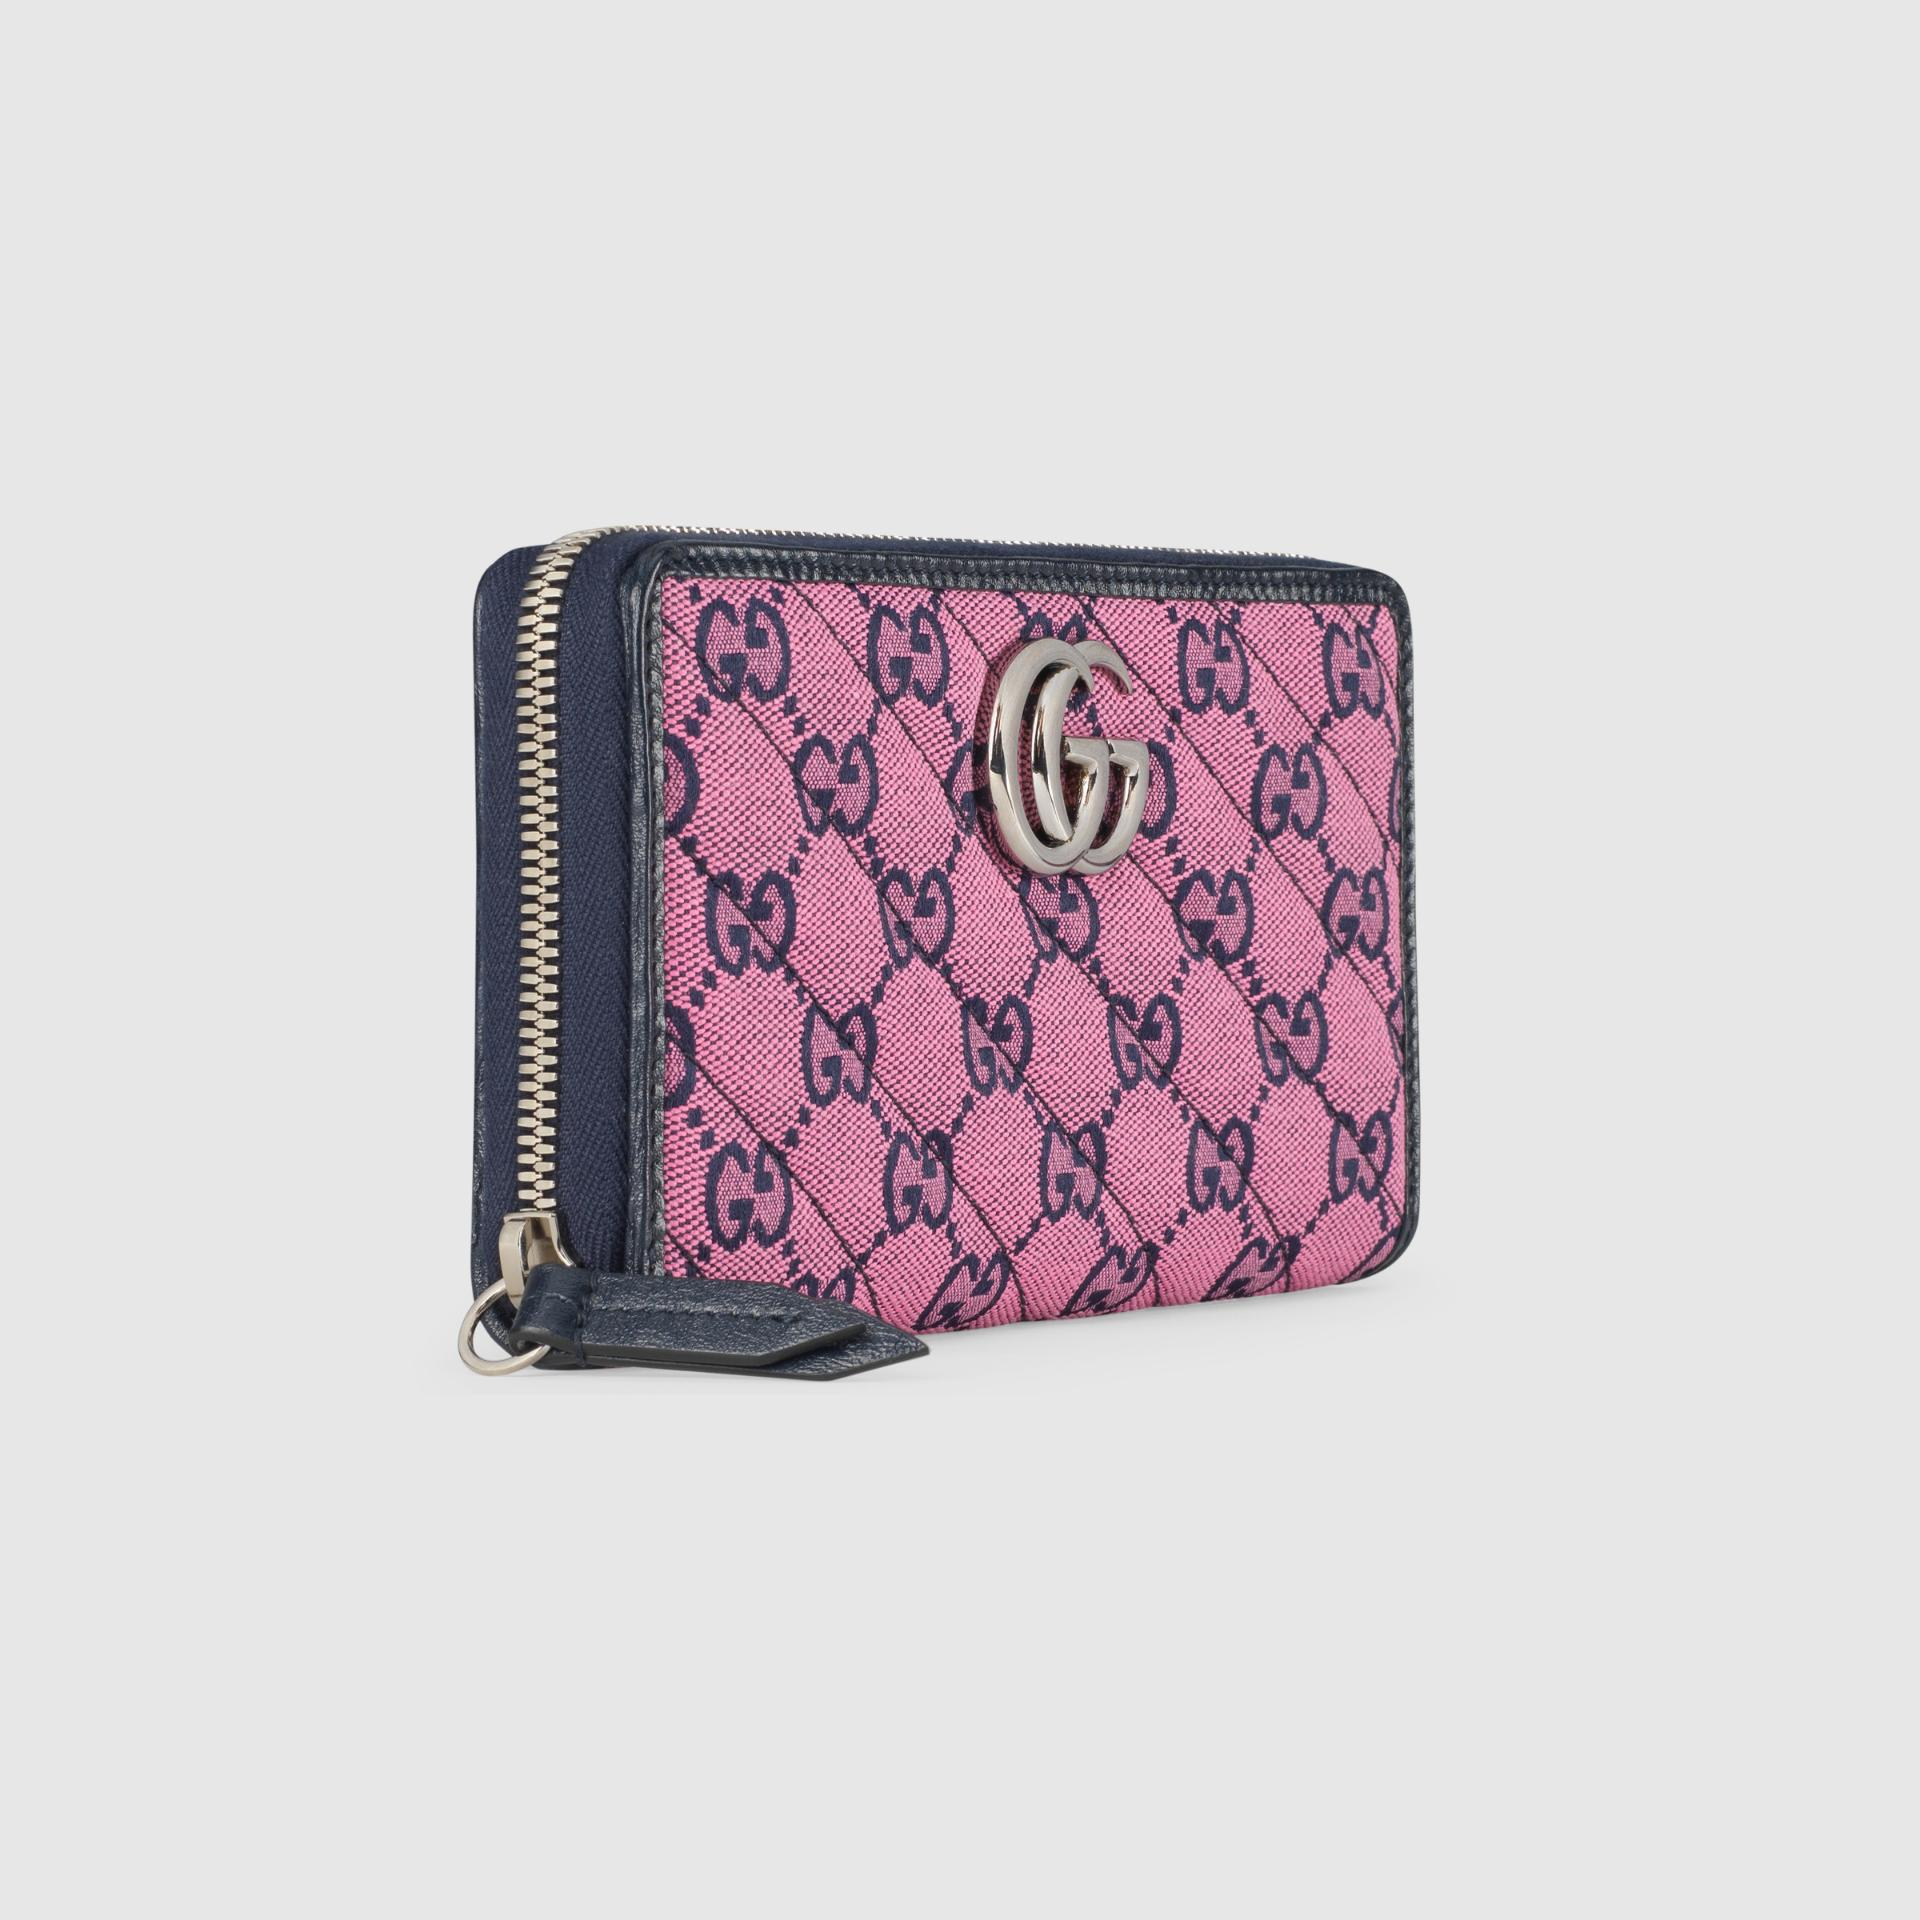 유럽직배송 구찌 GUCCI Gucci GG Marmont Multicolour zip around wallet 4431232UZCN5279